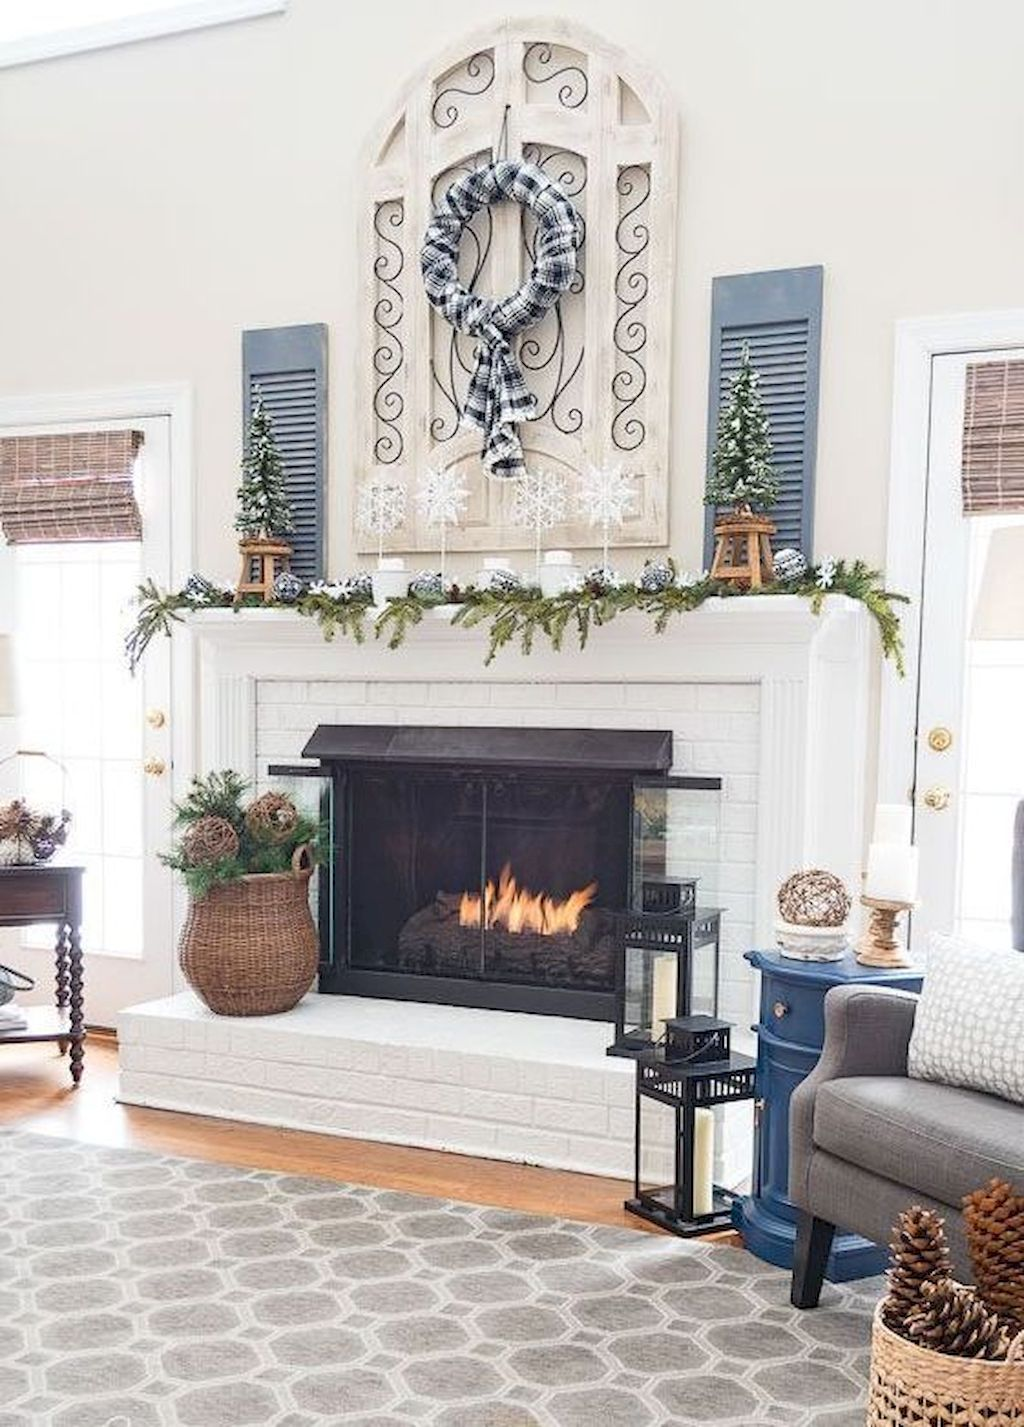 Superb Low Cost Adorning Concepts For Hearth Place Facades Or Mantels Fireplace Mantle Decor Fireplace Mantel Decor Fireplace Design